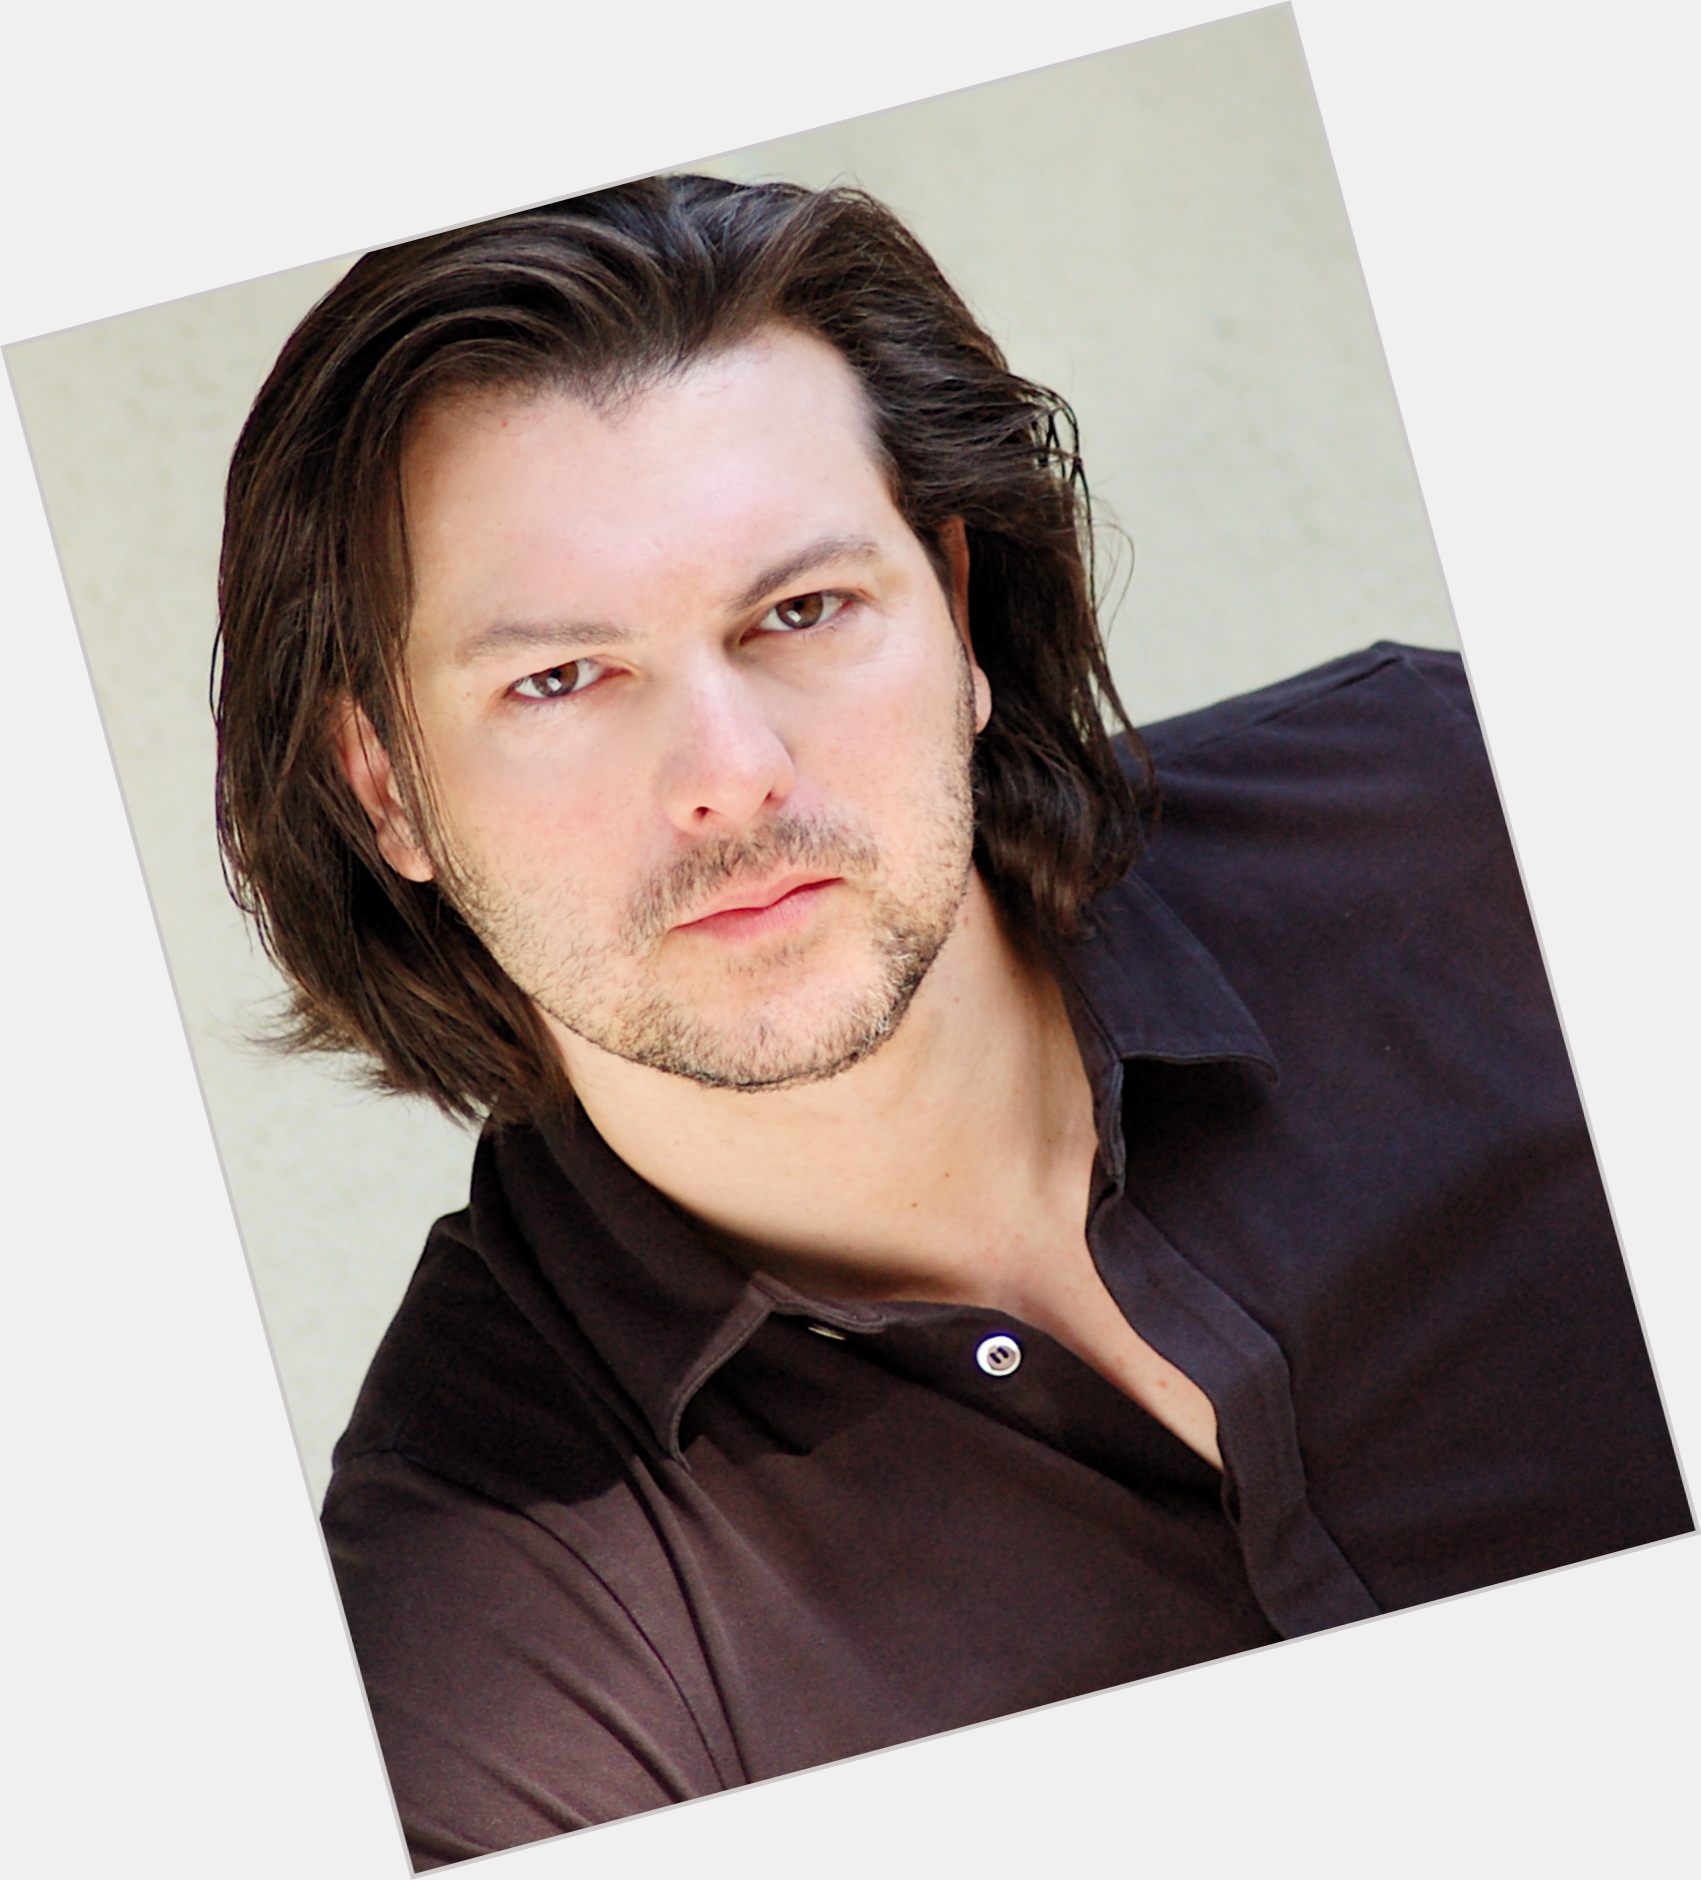 david hayter dressed as snake 1